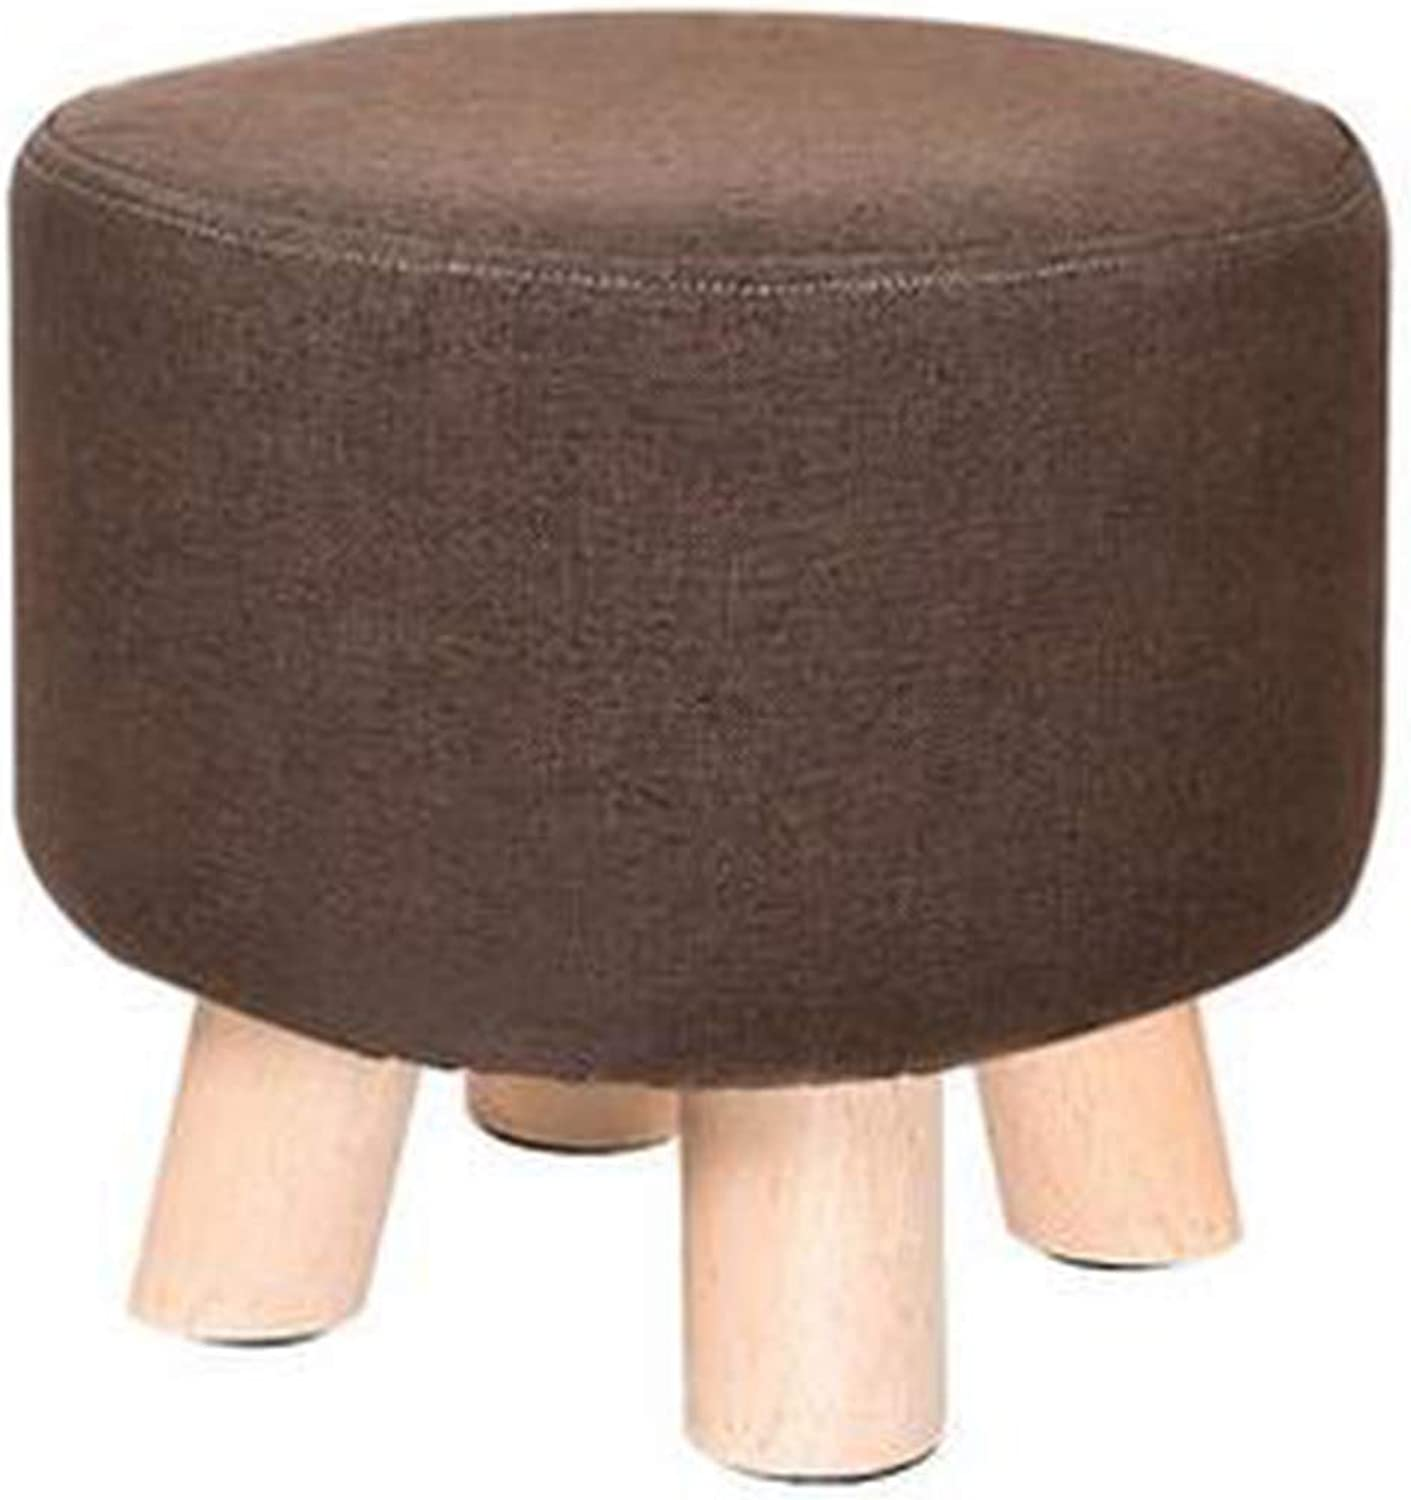 Creative Round Wooden Footstool Linen Foot Rest Stool Adult Kids Applicable, Brown